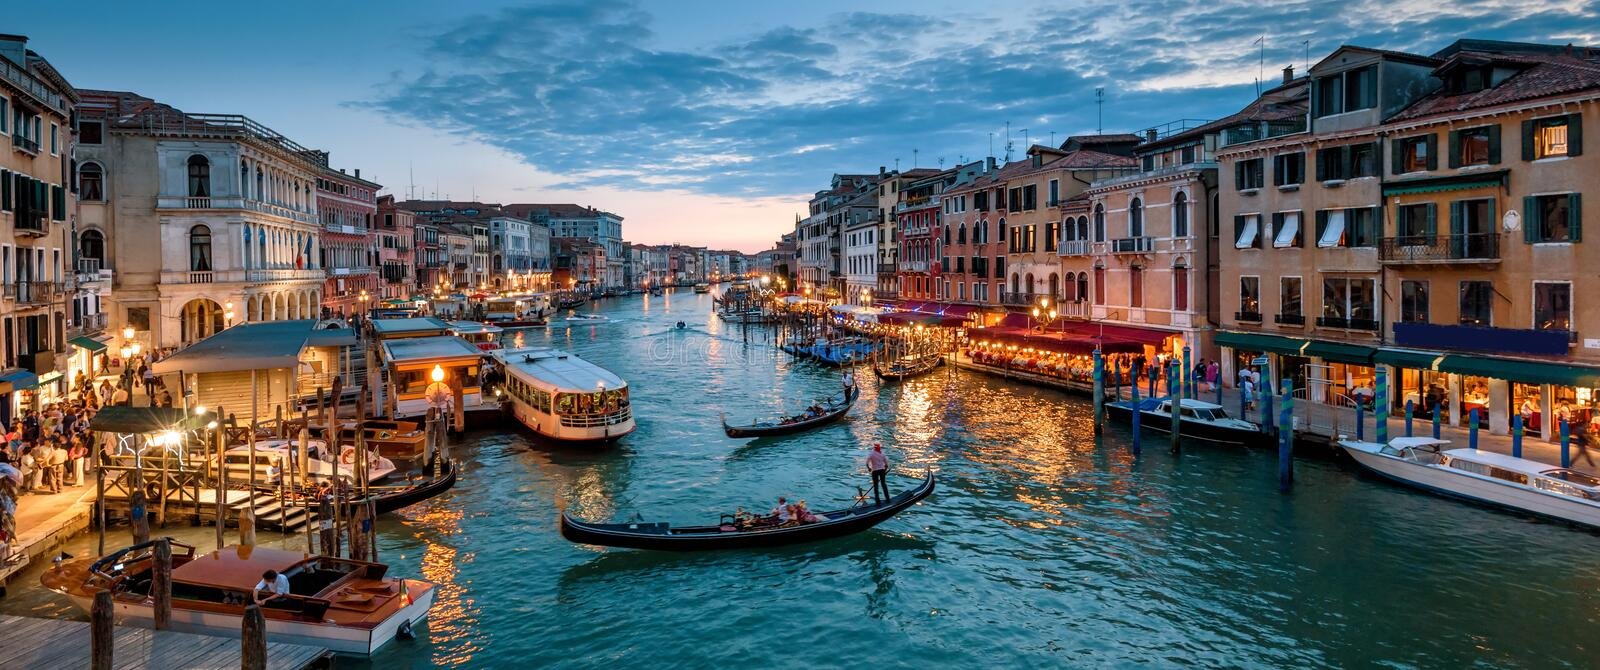 Panorama of Venice at night, Italy stock photo